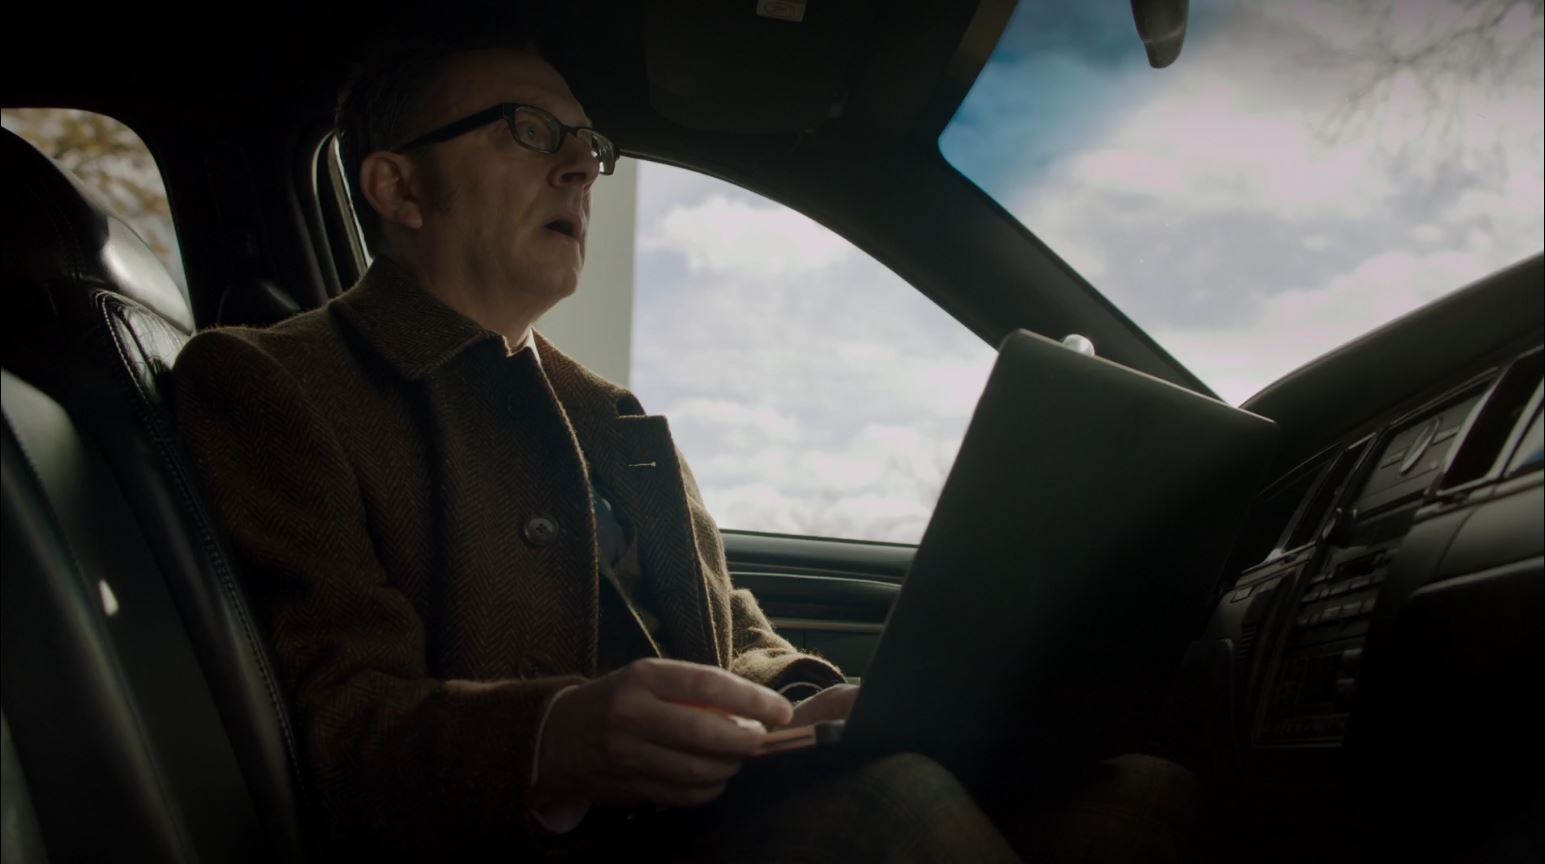 Person of Interest - Lethe - Finch going out into the field